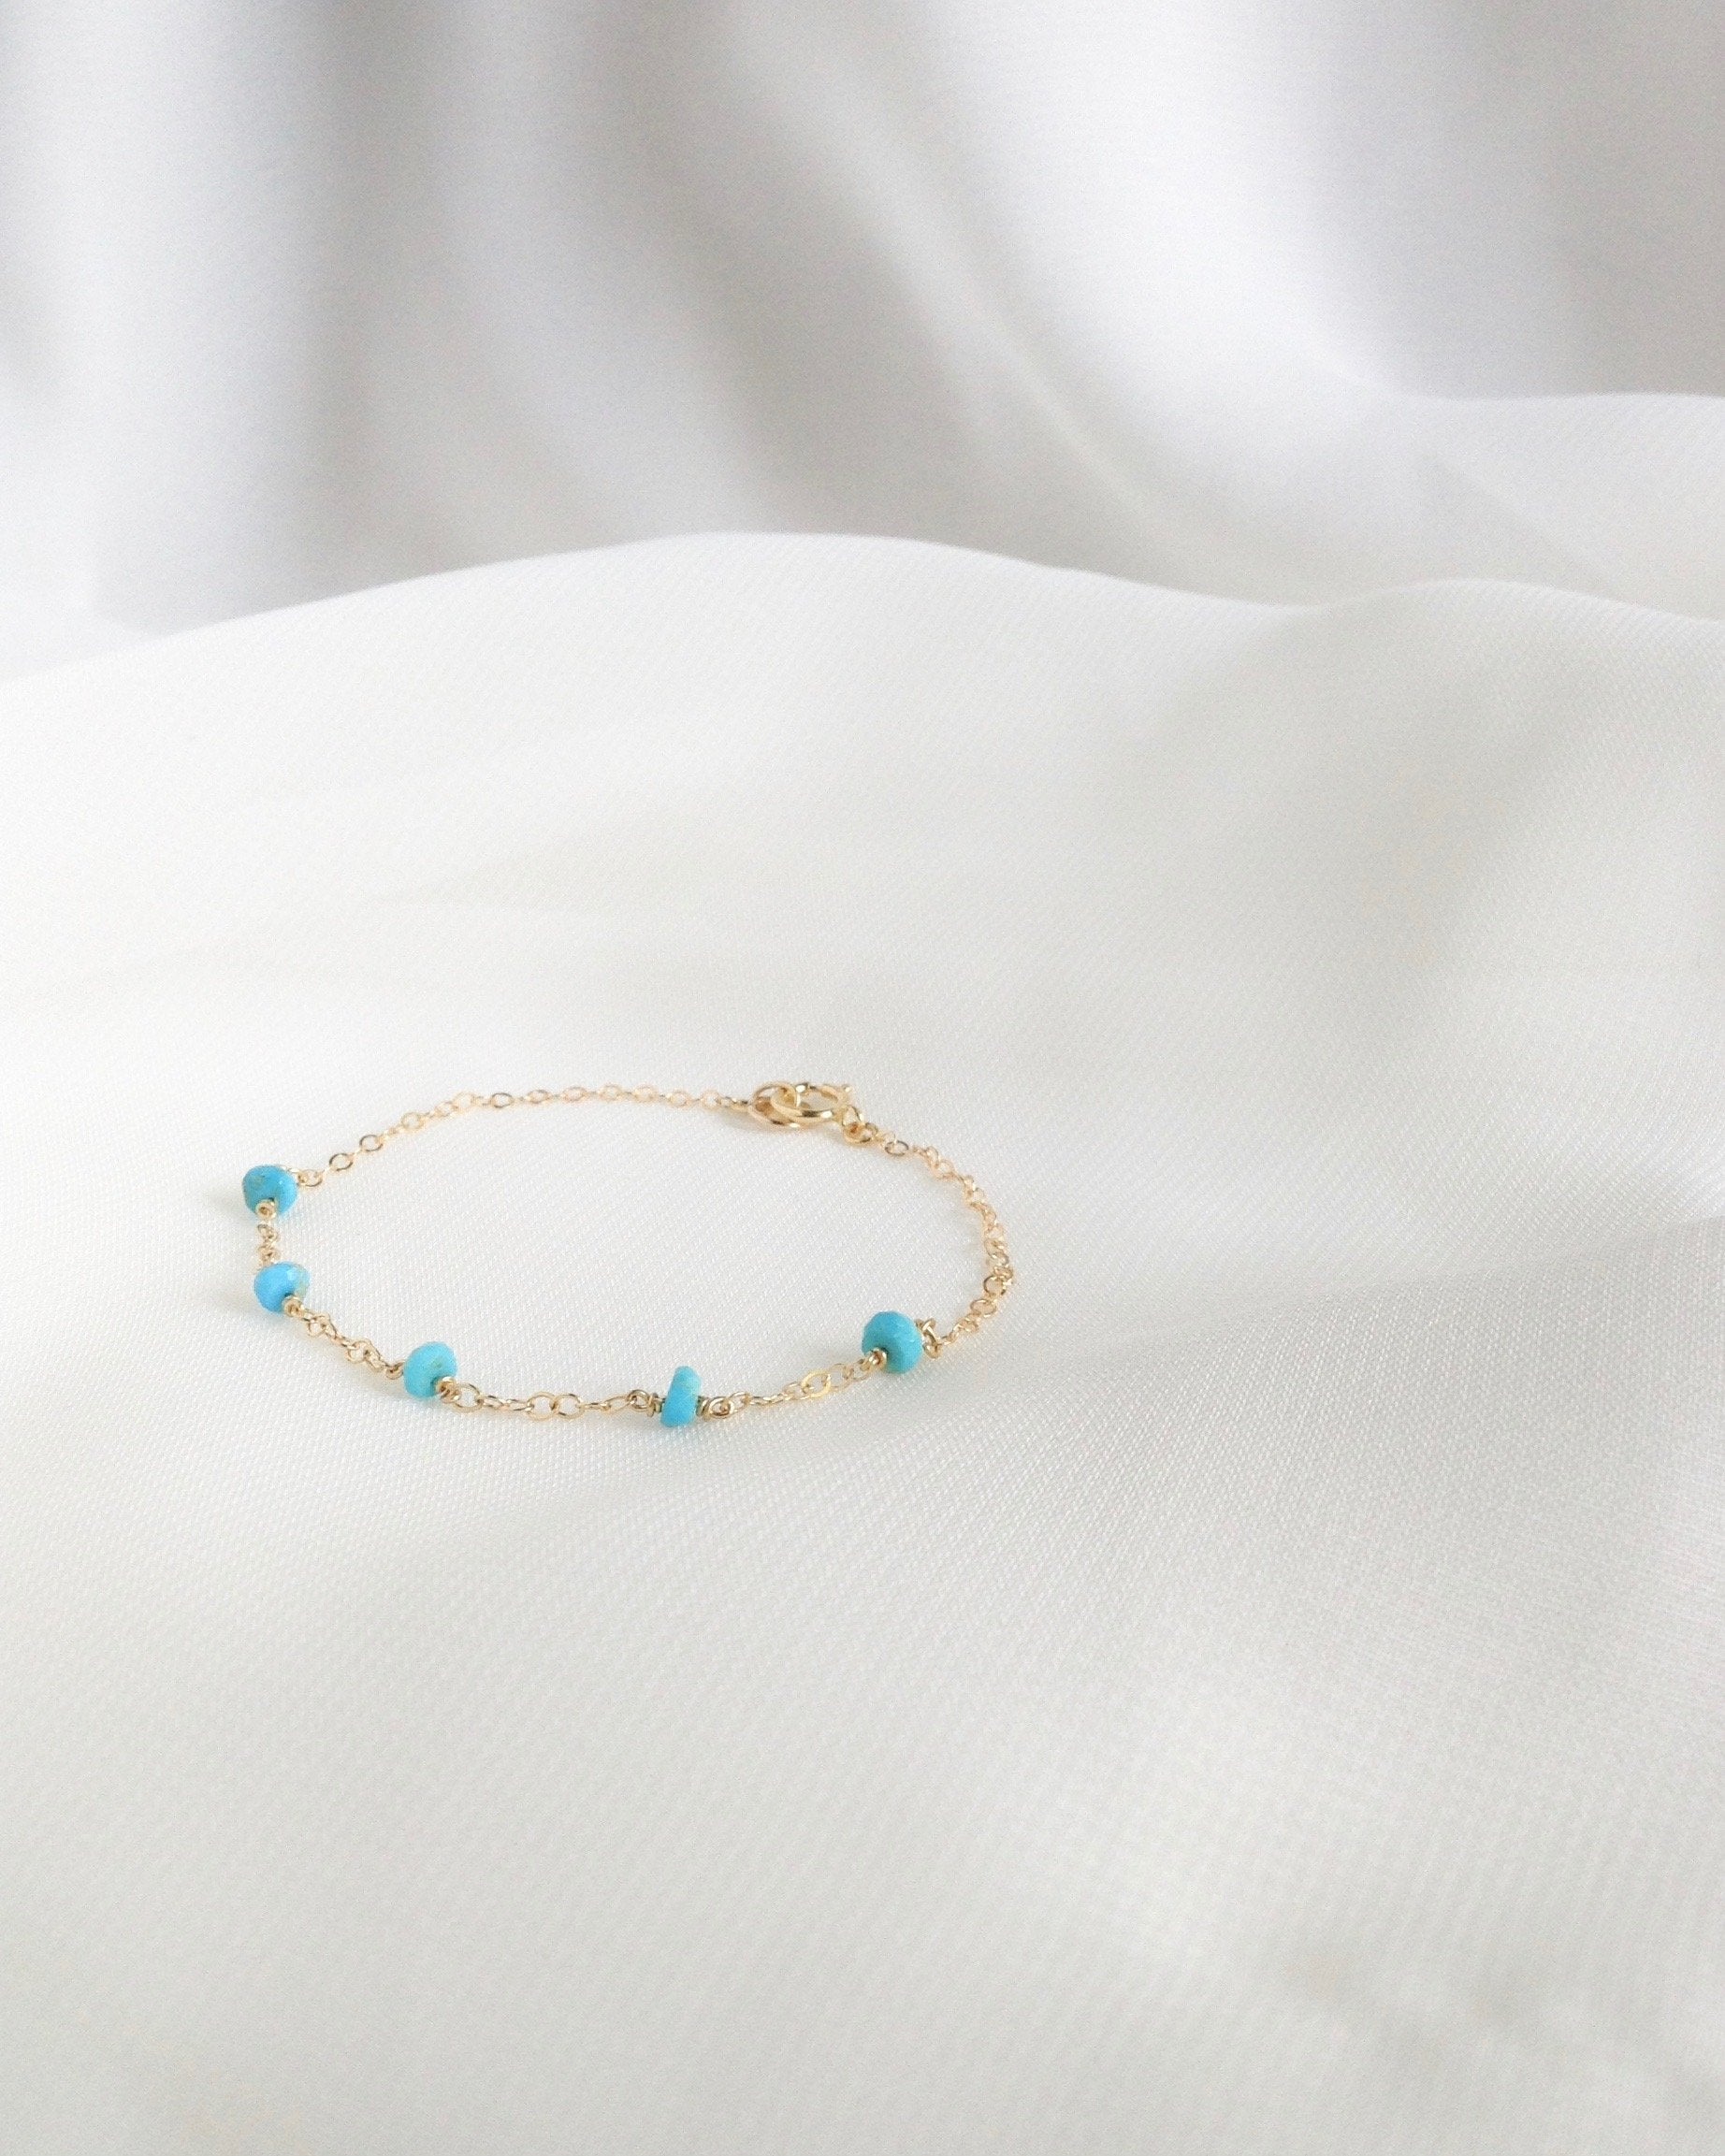 Real Turquoise Minimal Thin Chain Everyday Bracelet | Dainty Bracelet | IB Jewelry